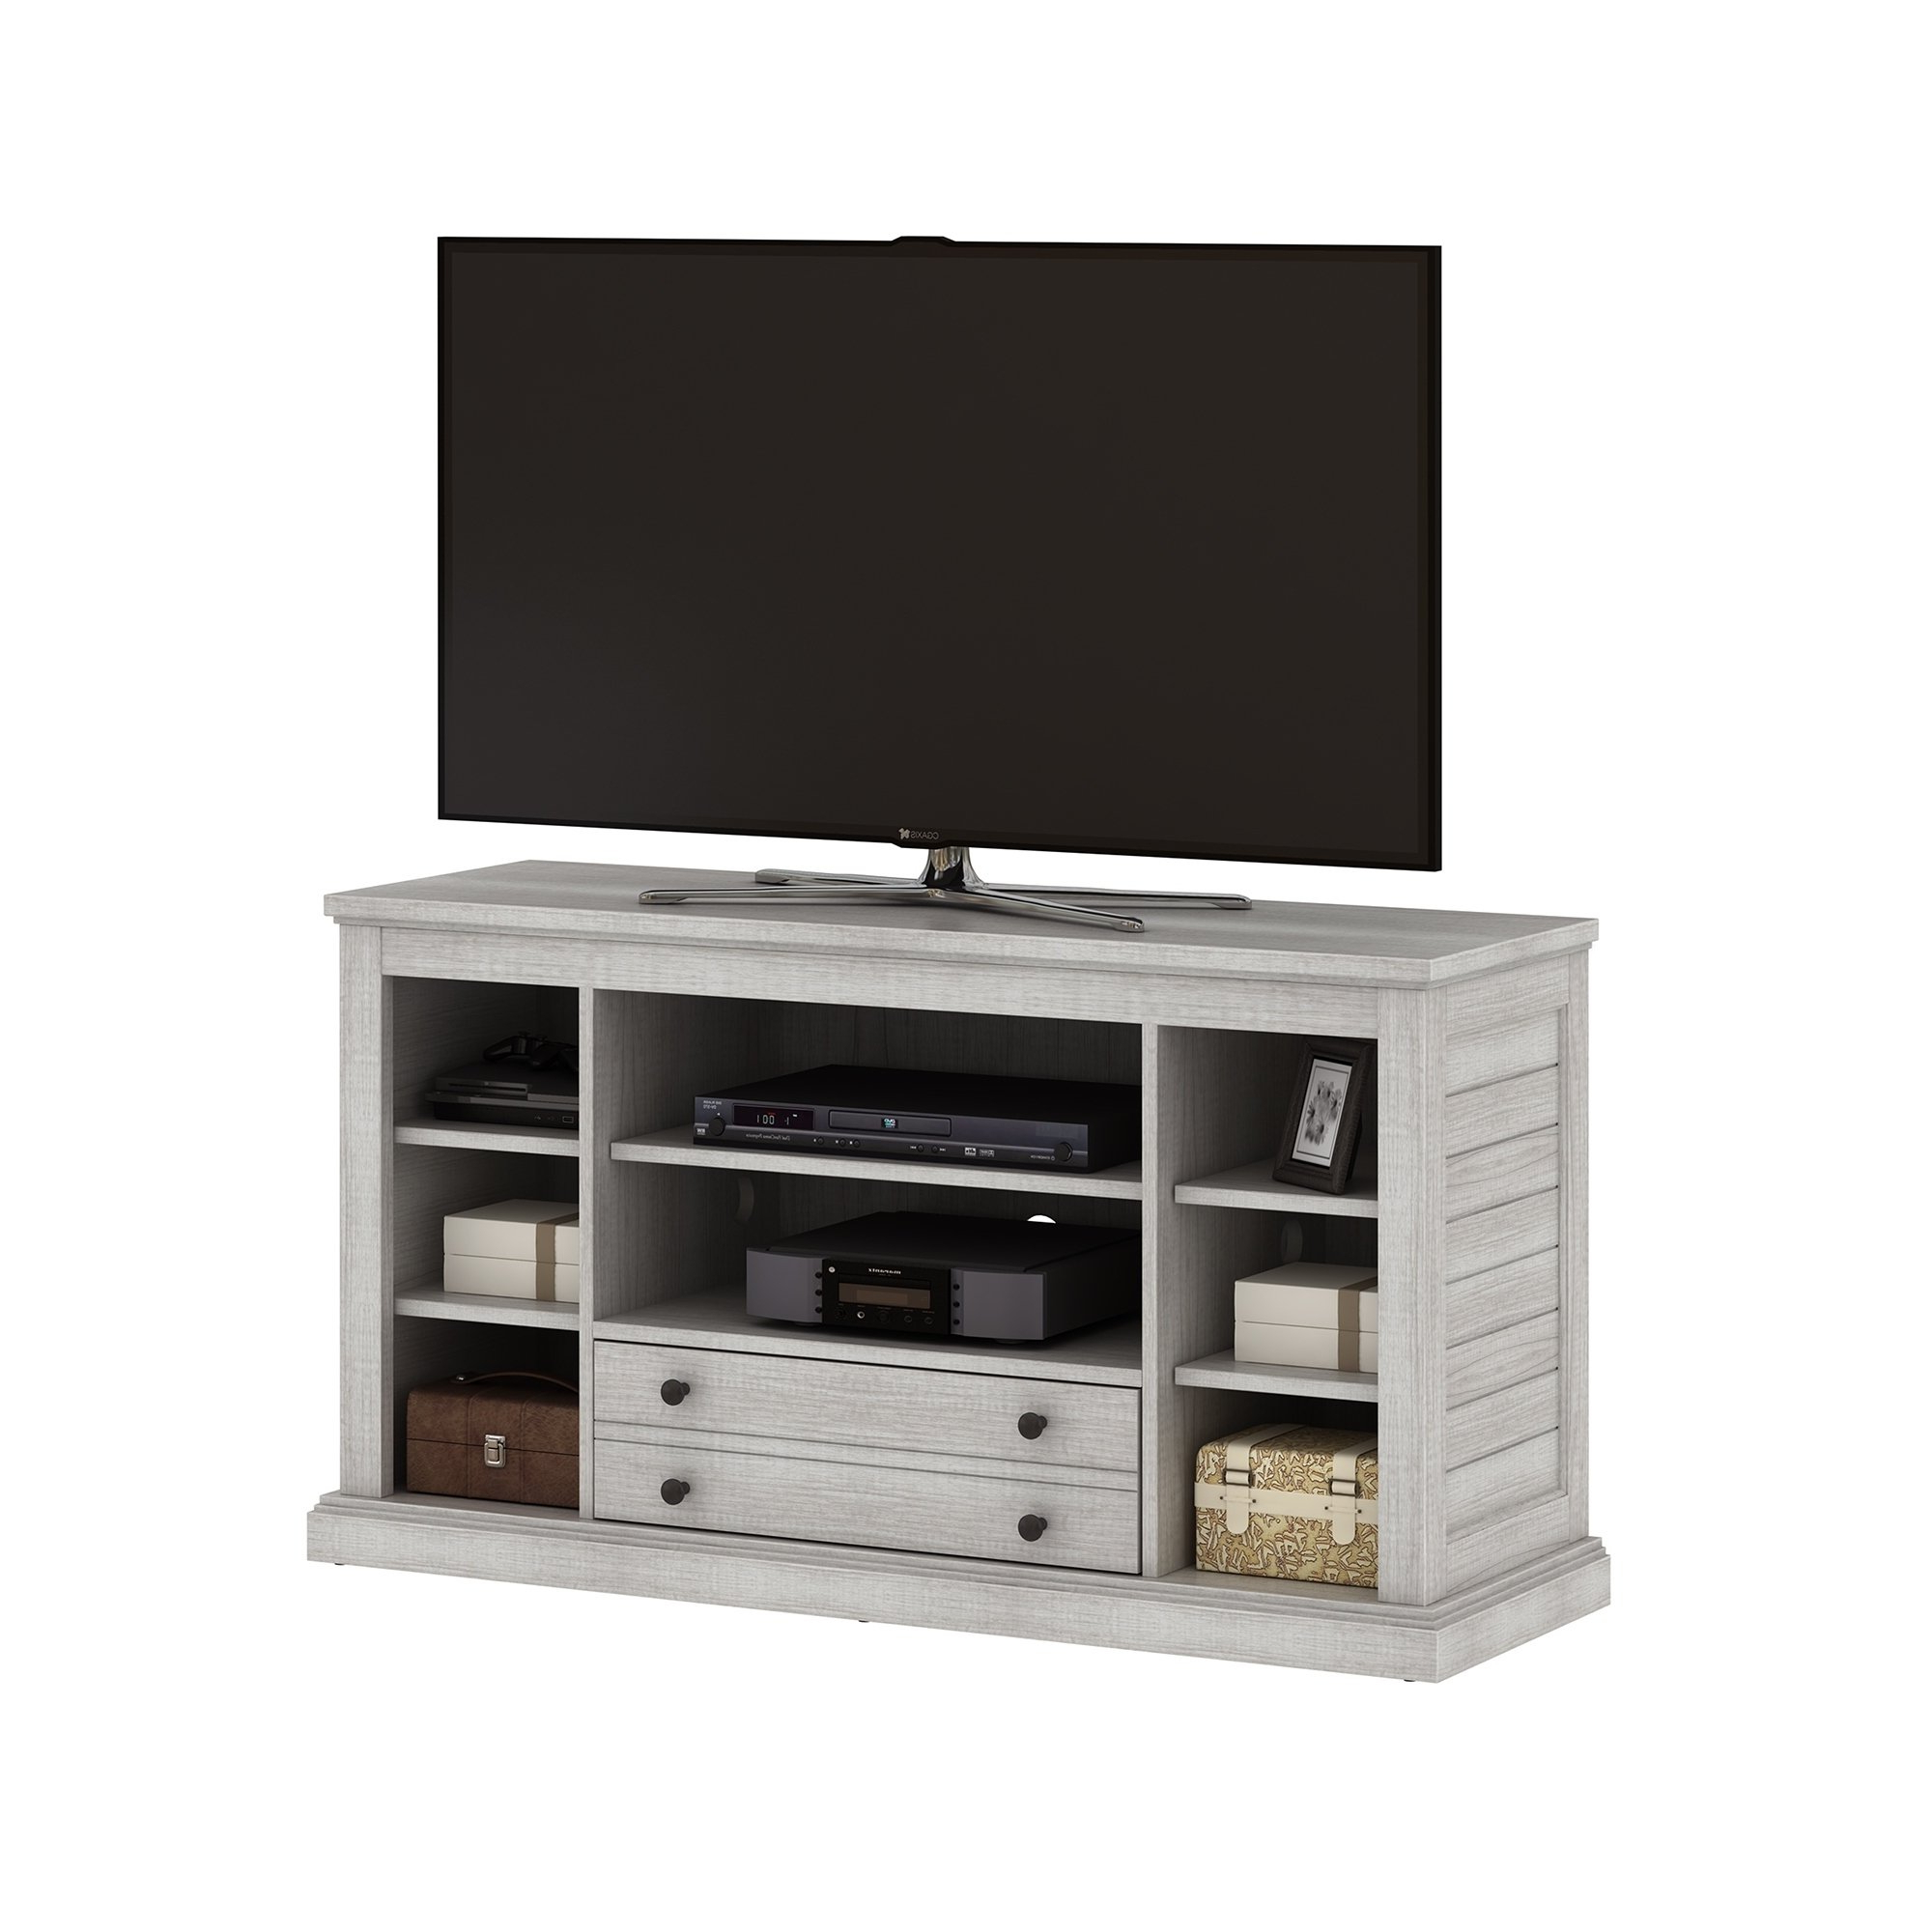 "Shop Abbott Commons Tv Stand For Tvs Up To 55"", Sargent Oak – Free Intended For Abbot 60 Inch Tv Stands (View 12 of 20)"